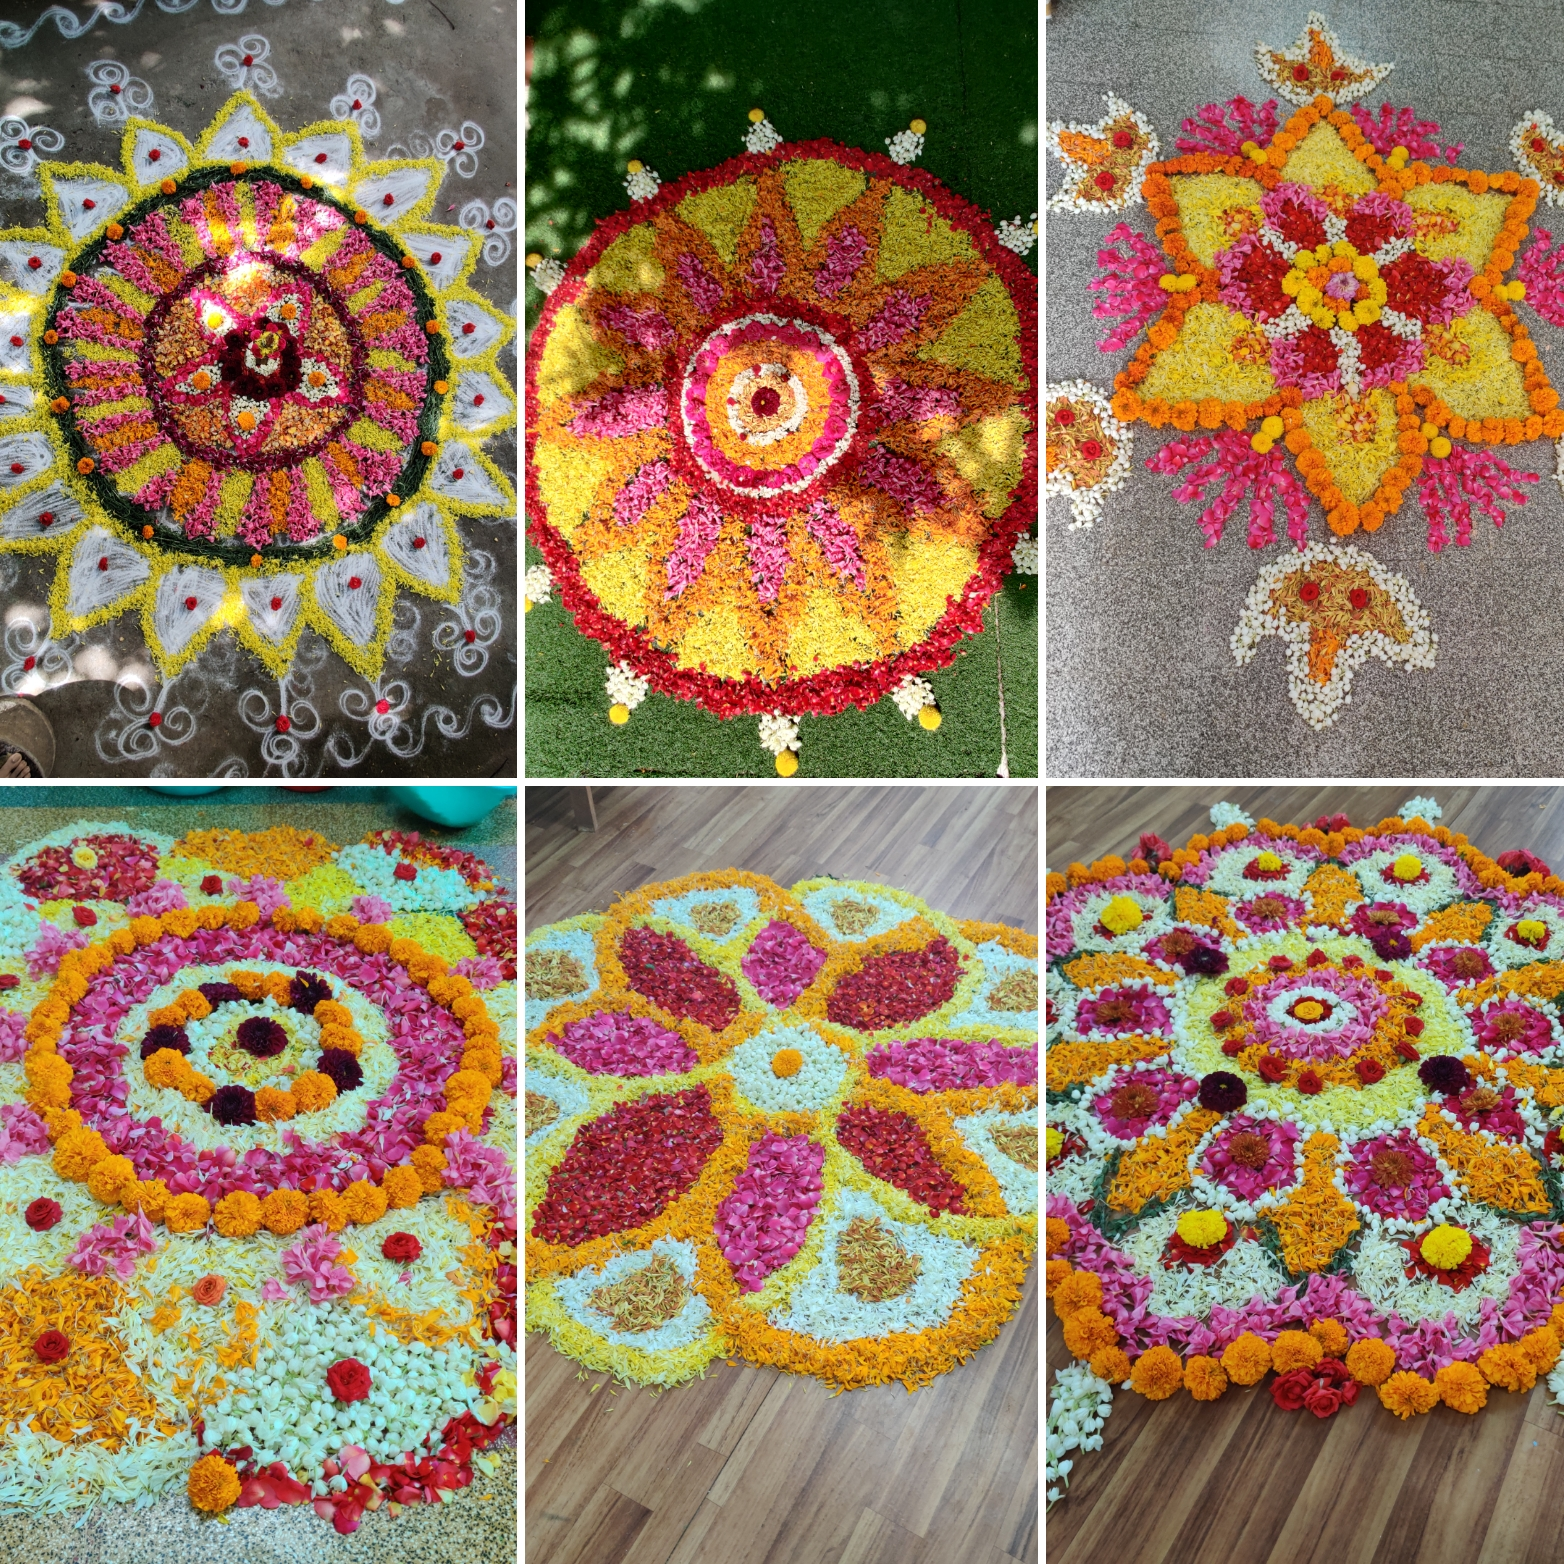 Pretty Pookolams done at our environment